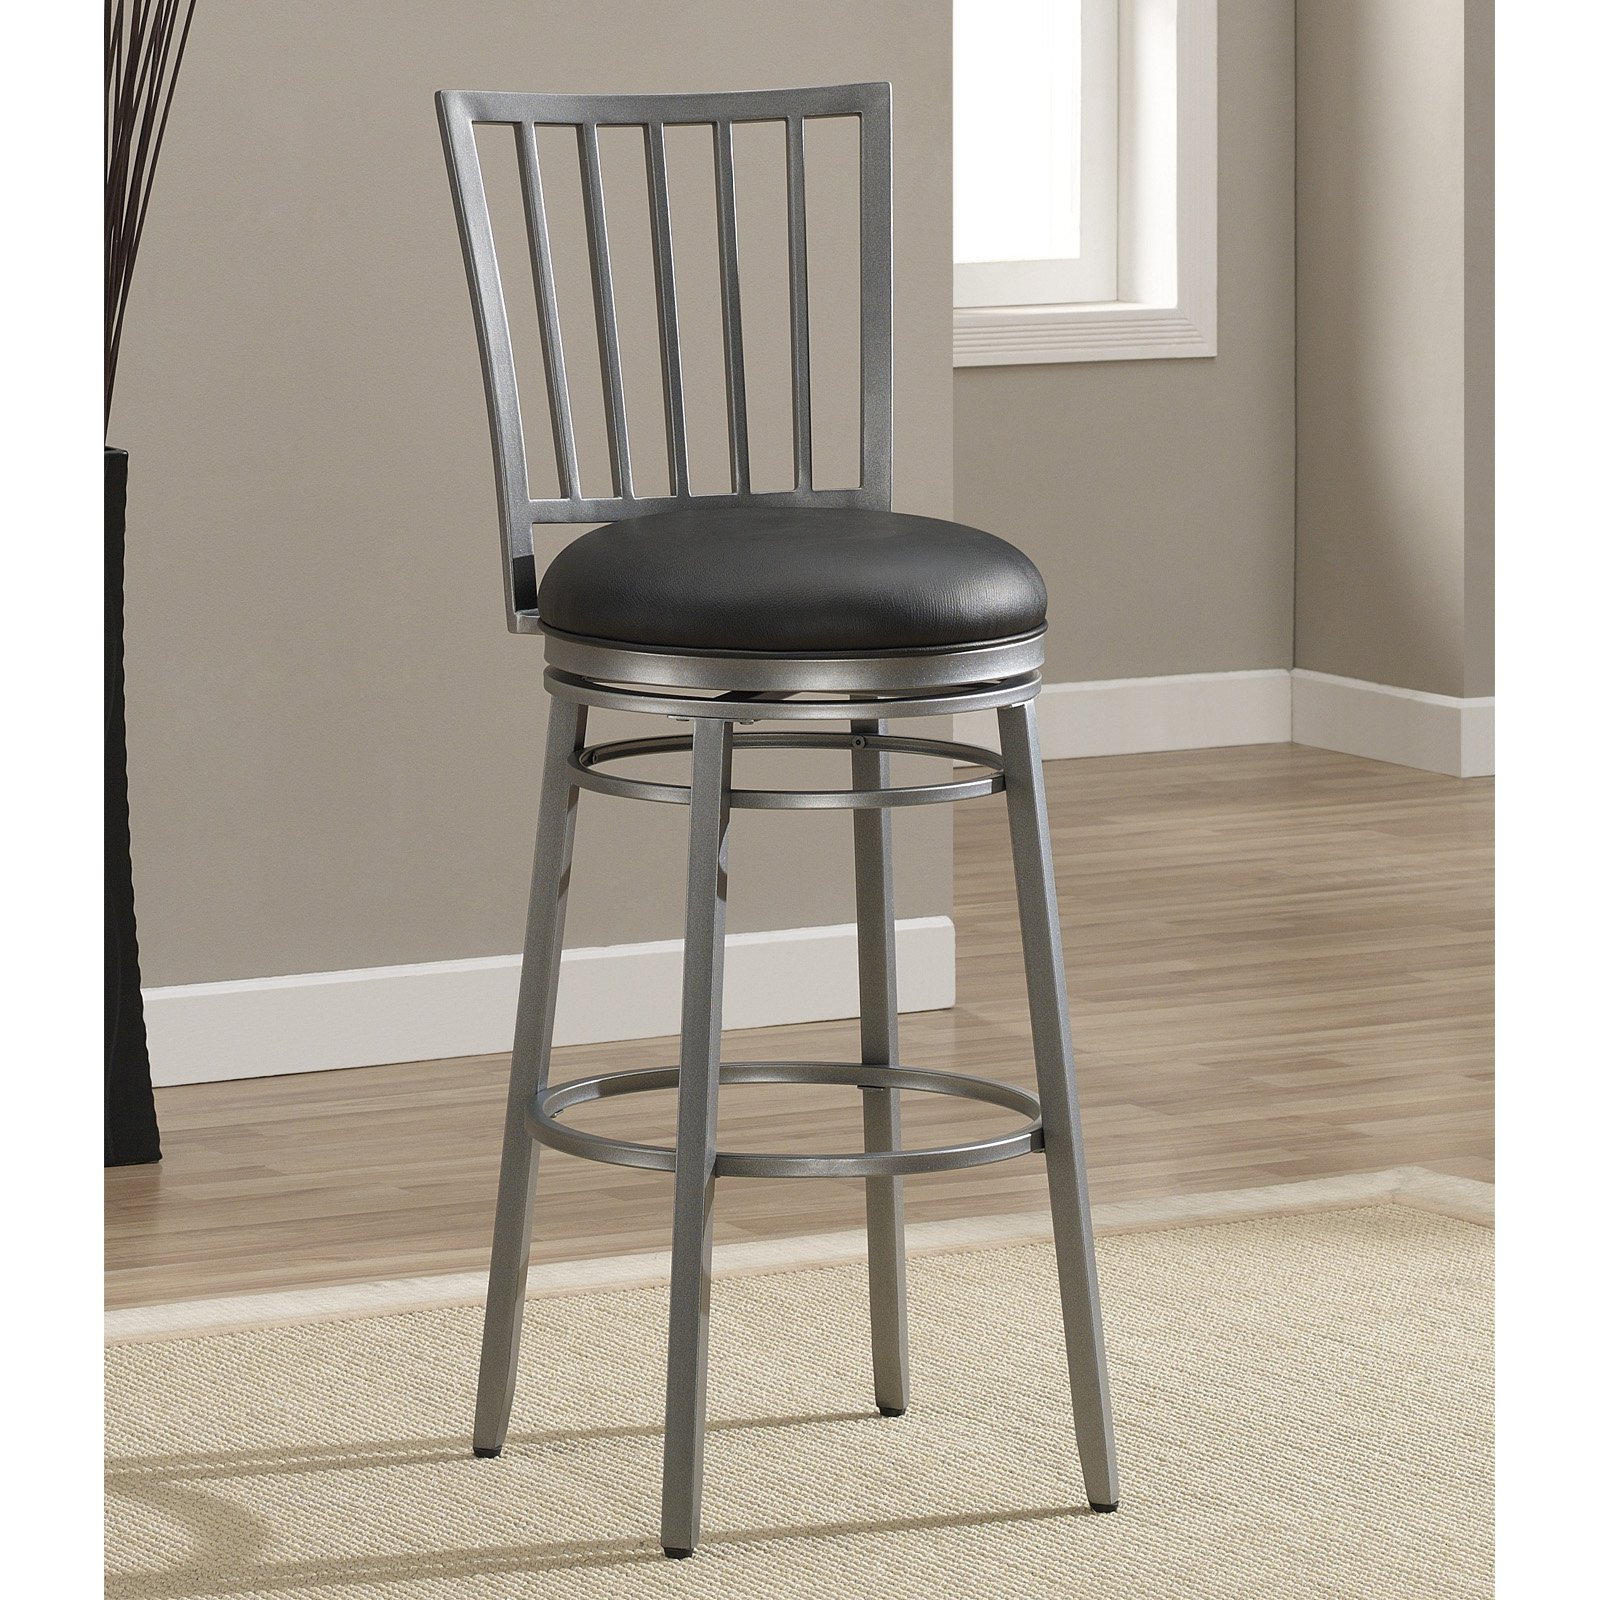 Charmant AHB Easton Bar Stool   Flint   Walmart.com